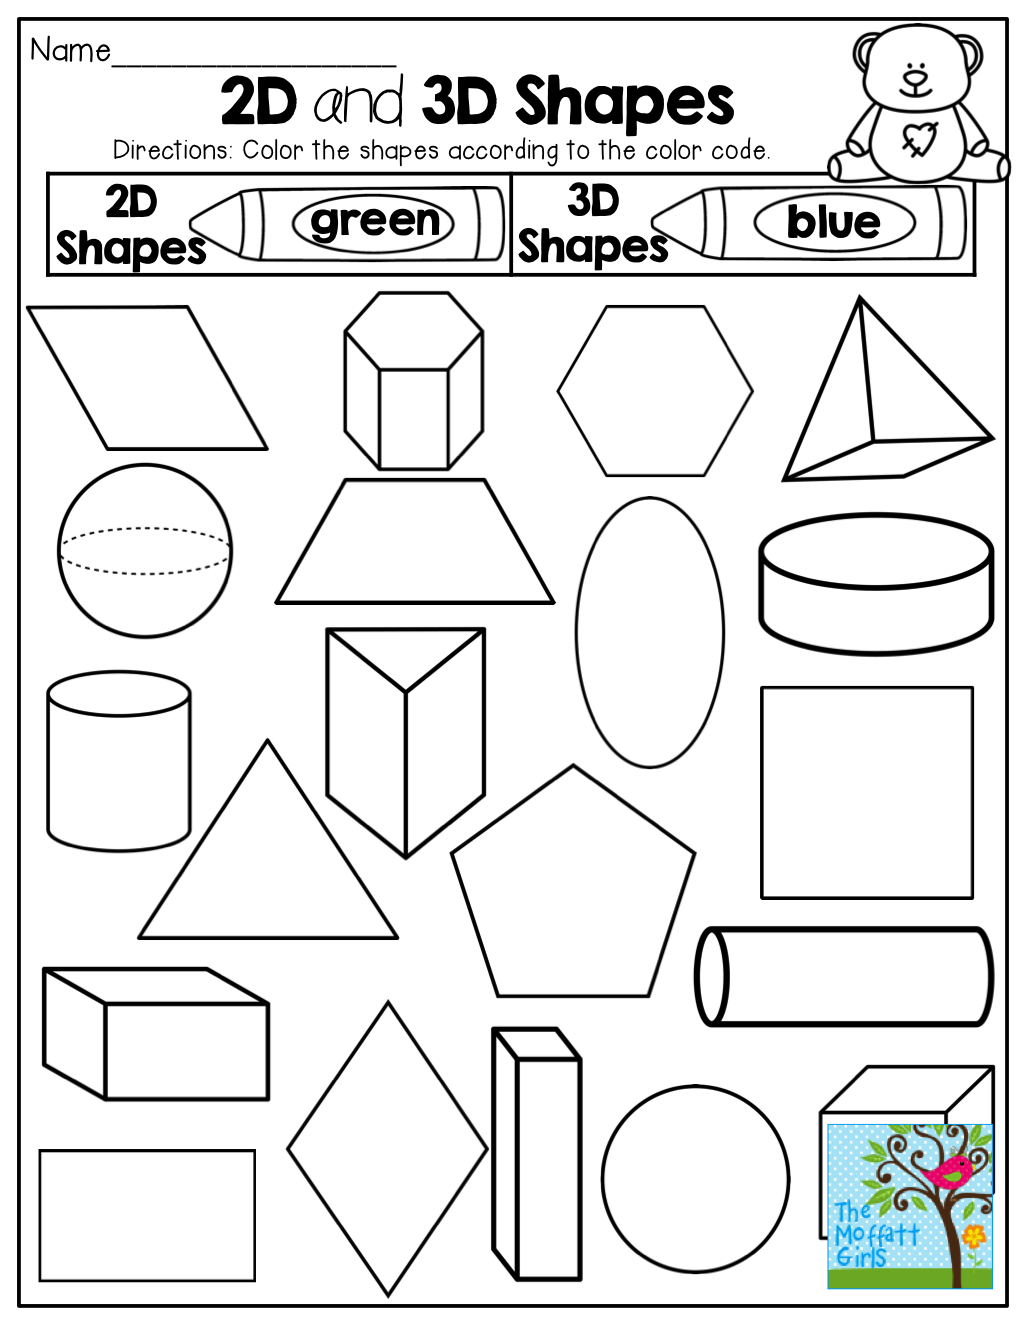 hight resolution of 2-D and 3-D Shapes! Color by the code! Tons of fun printables!   Shapes  worksheet kindergarten